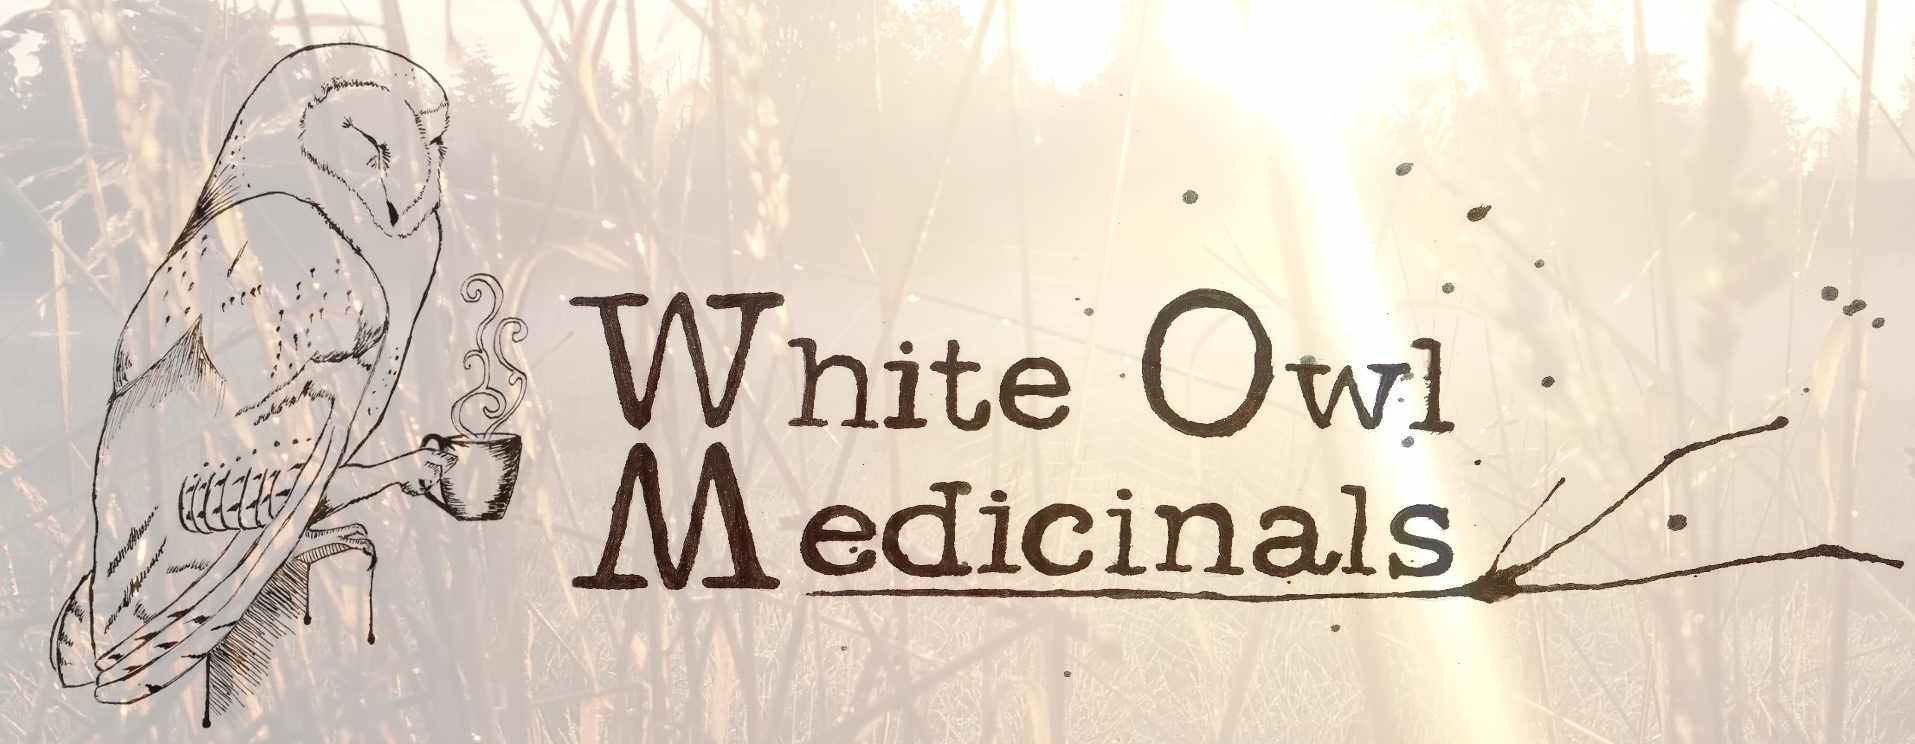 White Owl Medicinals